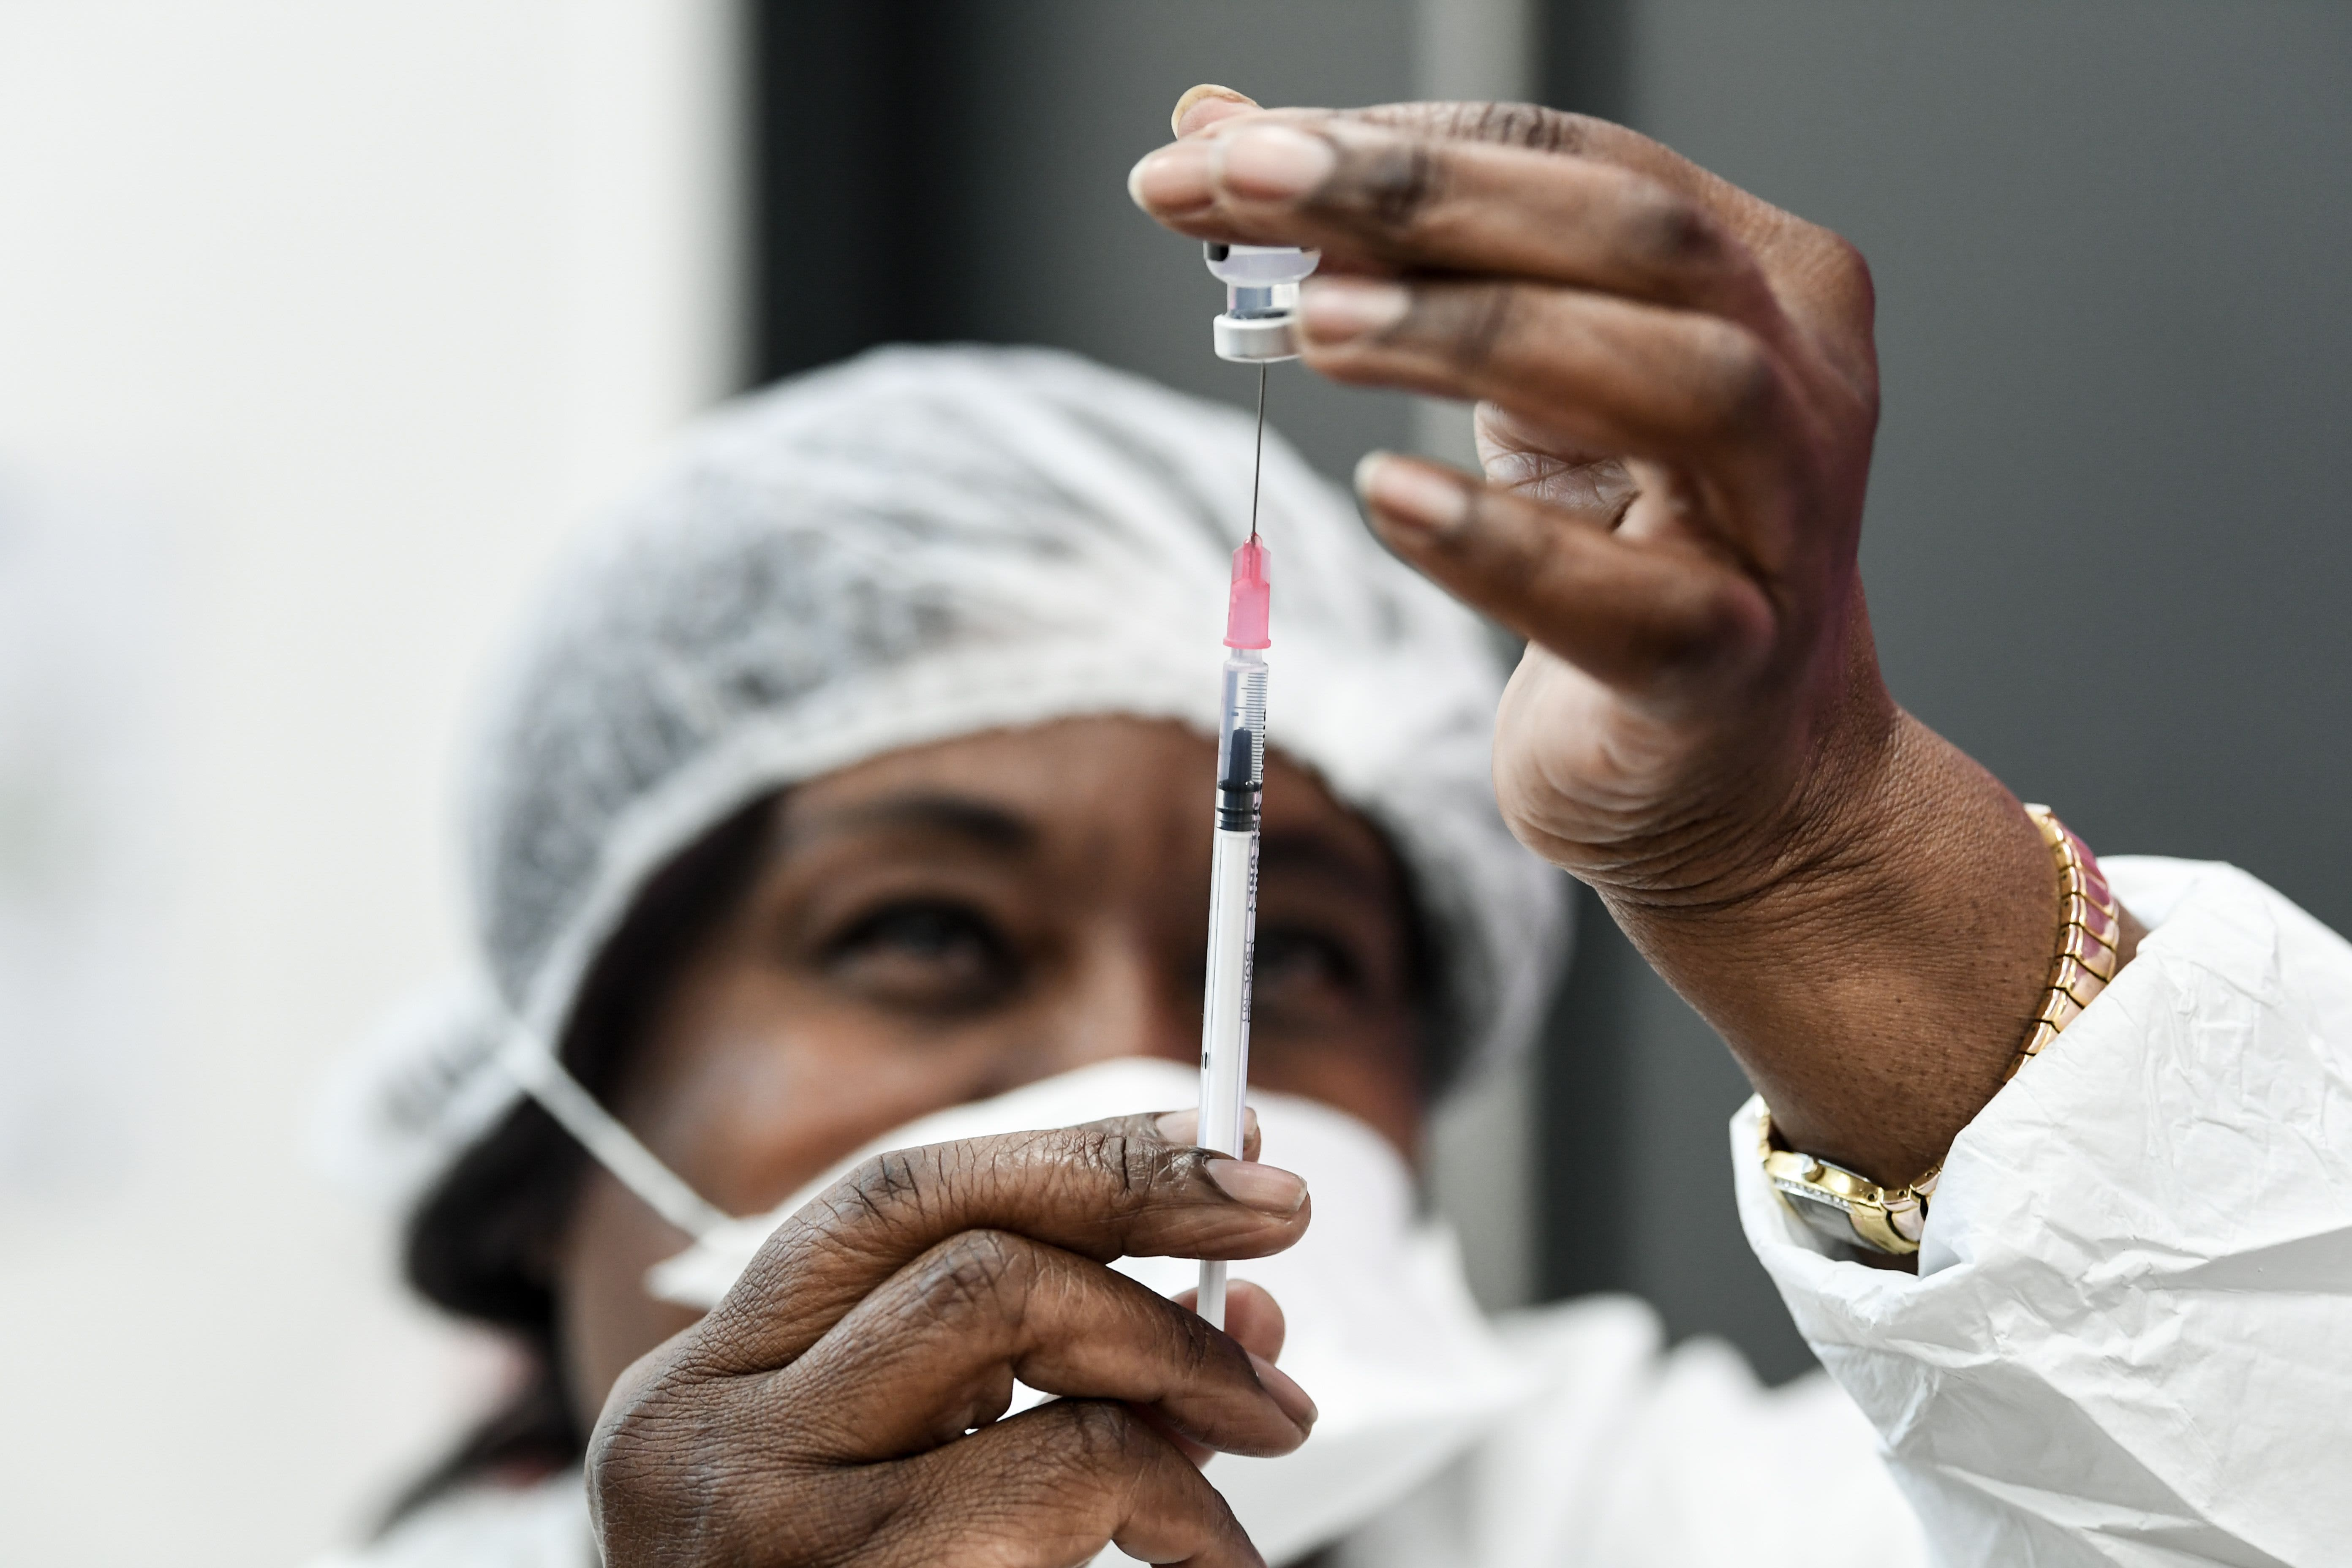 Pfizer to supply up to 40 million doses of Covid vaccine to Covax global immunization program